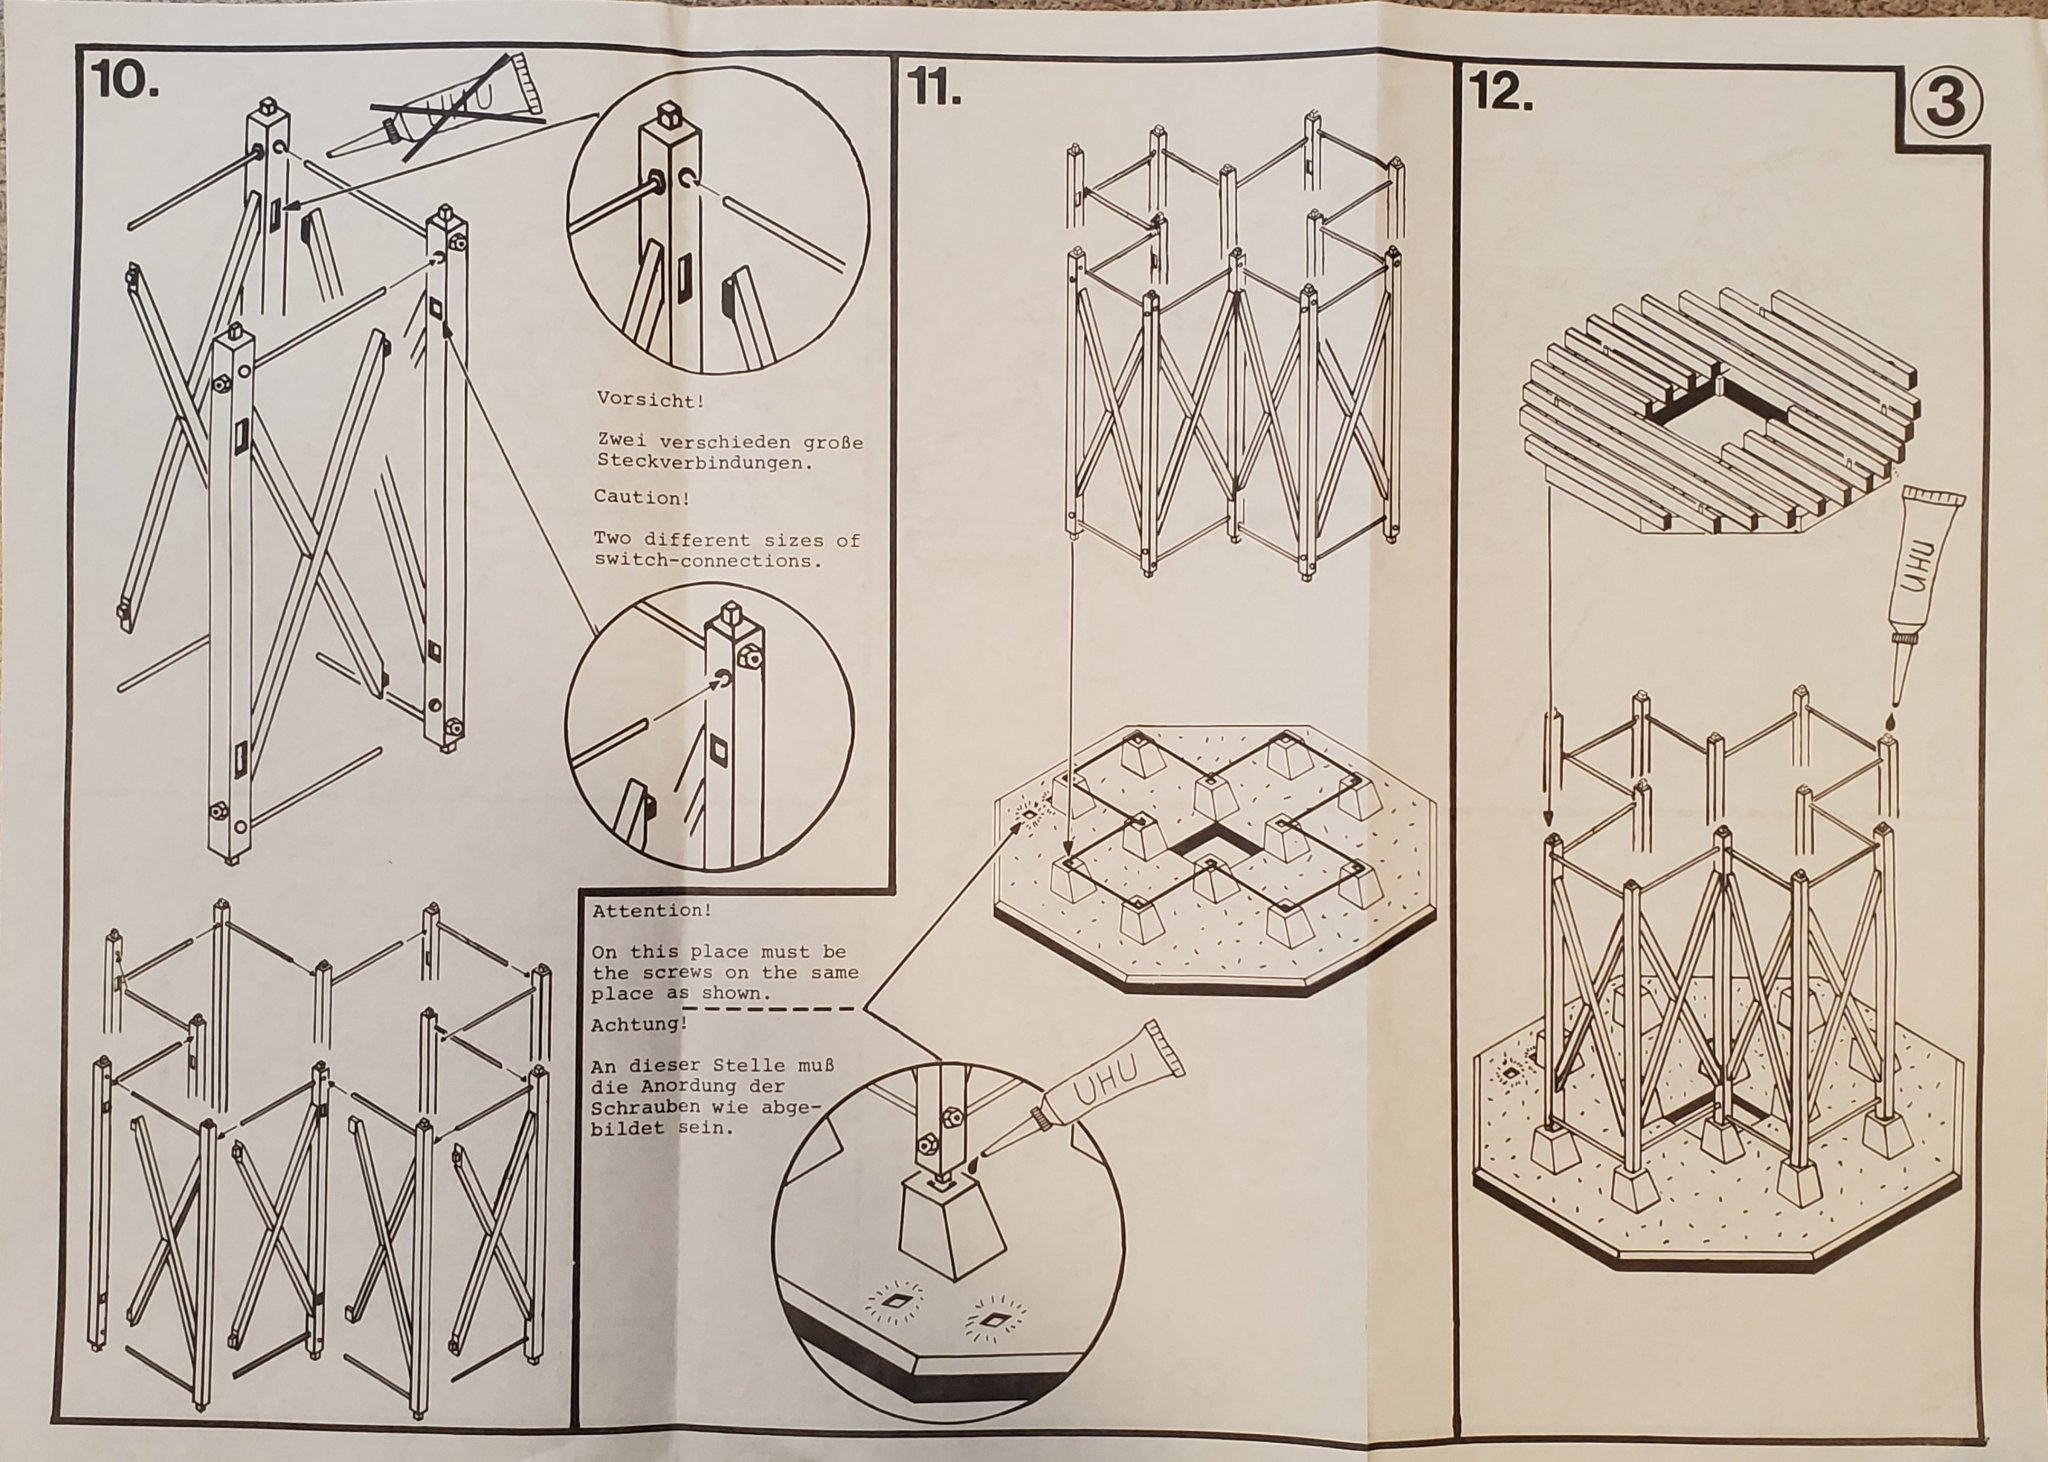 Pola 923 American Water Tower Instructions p3of6.jpg